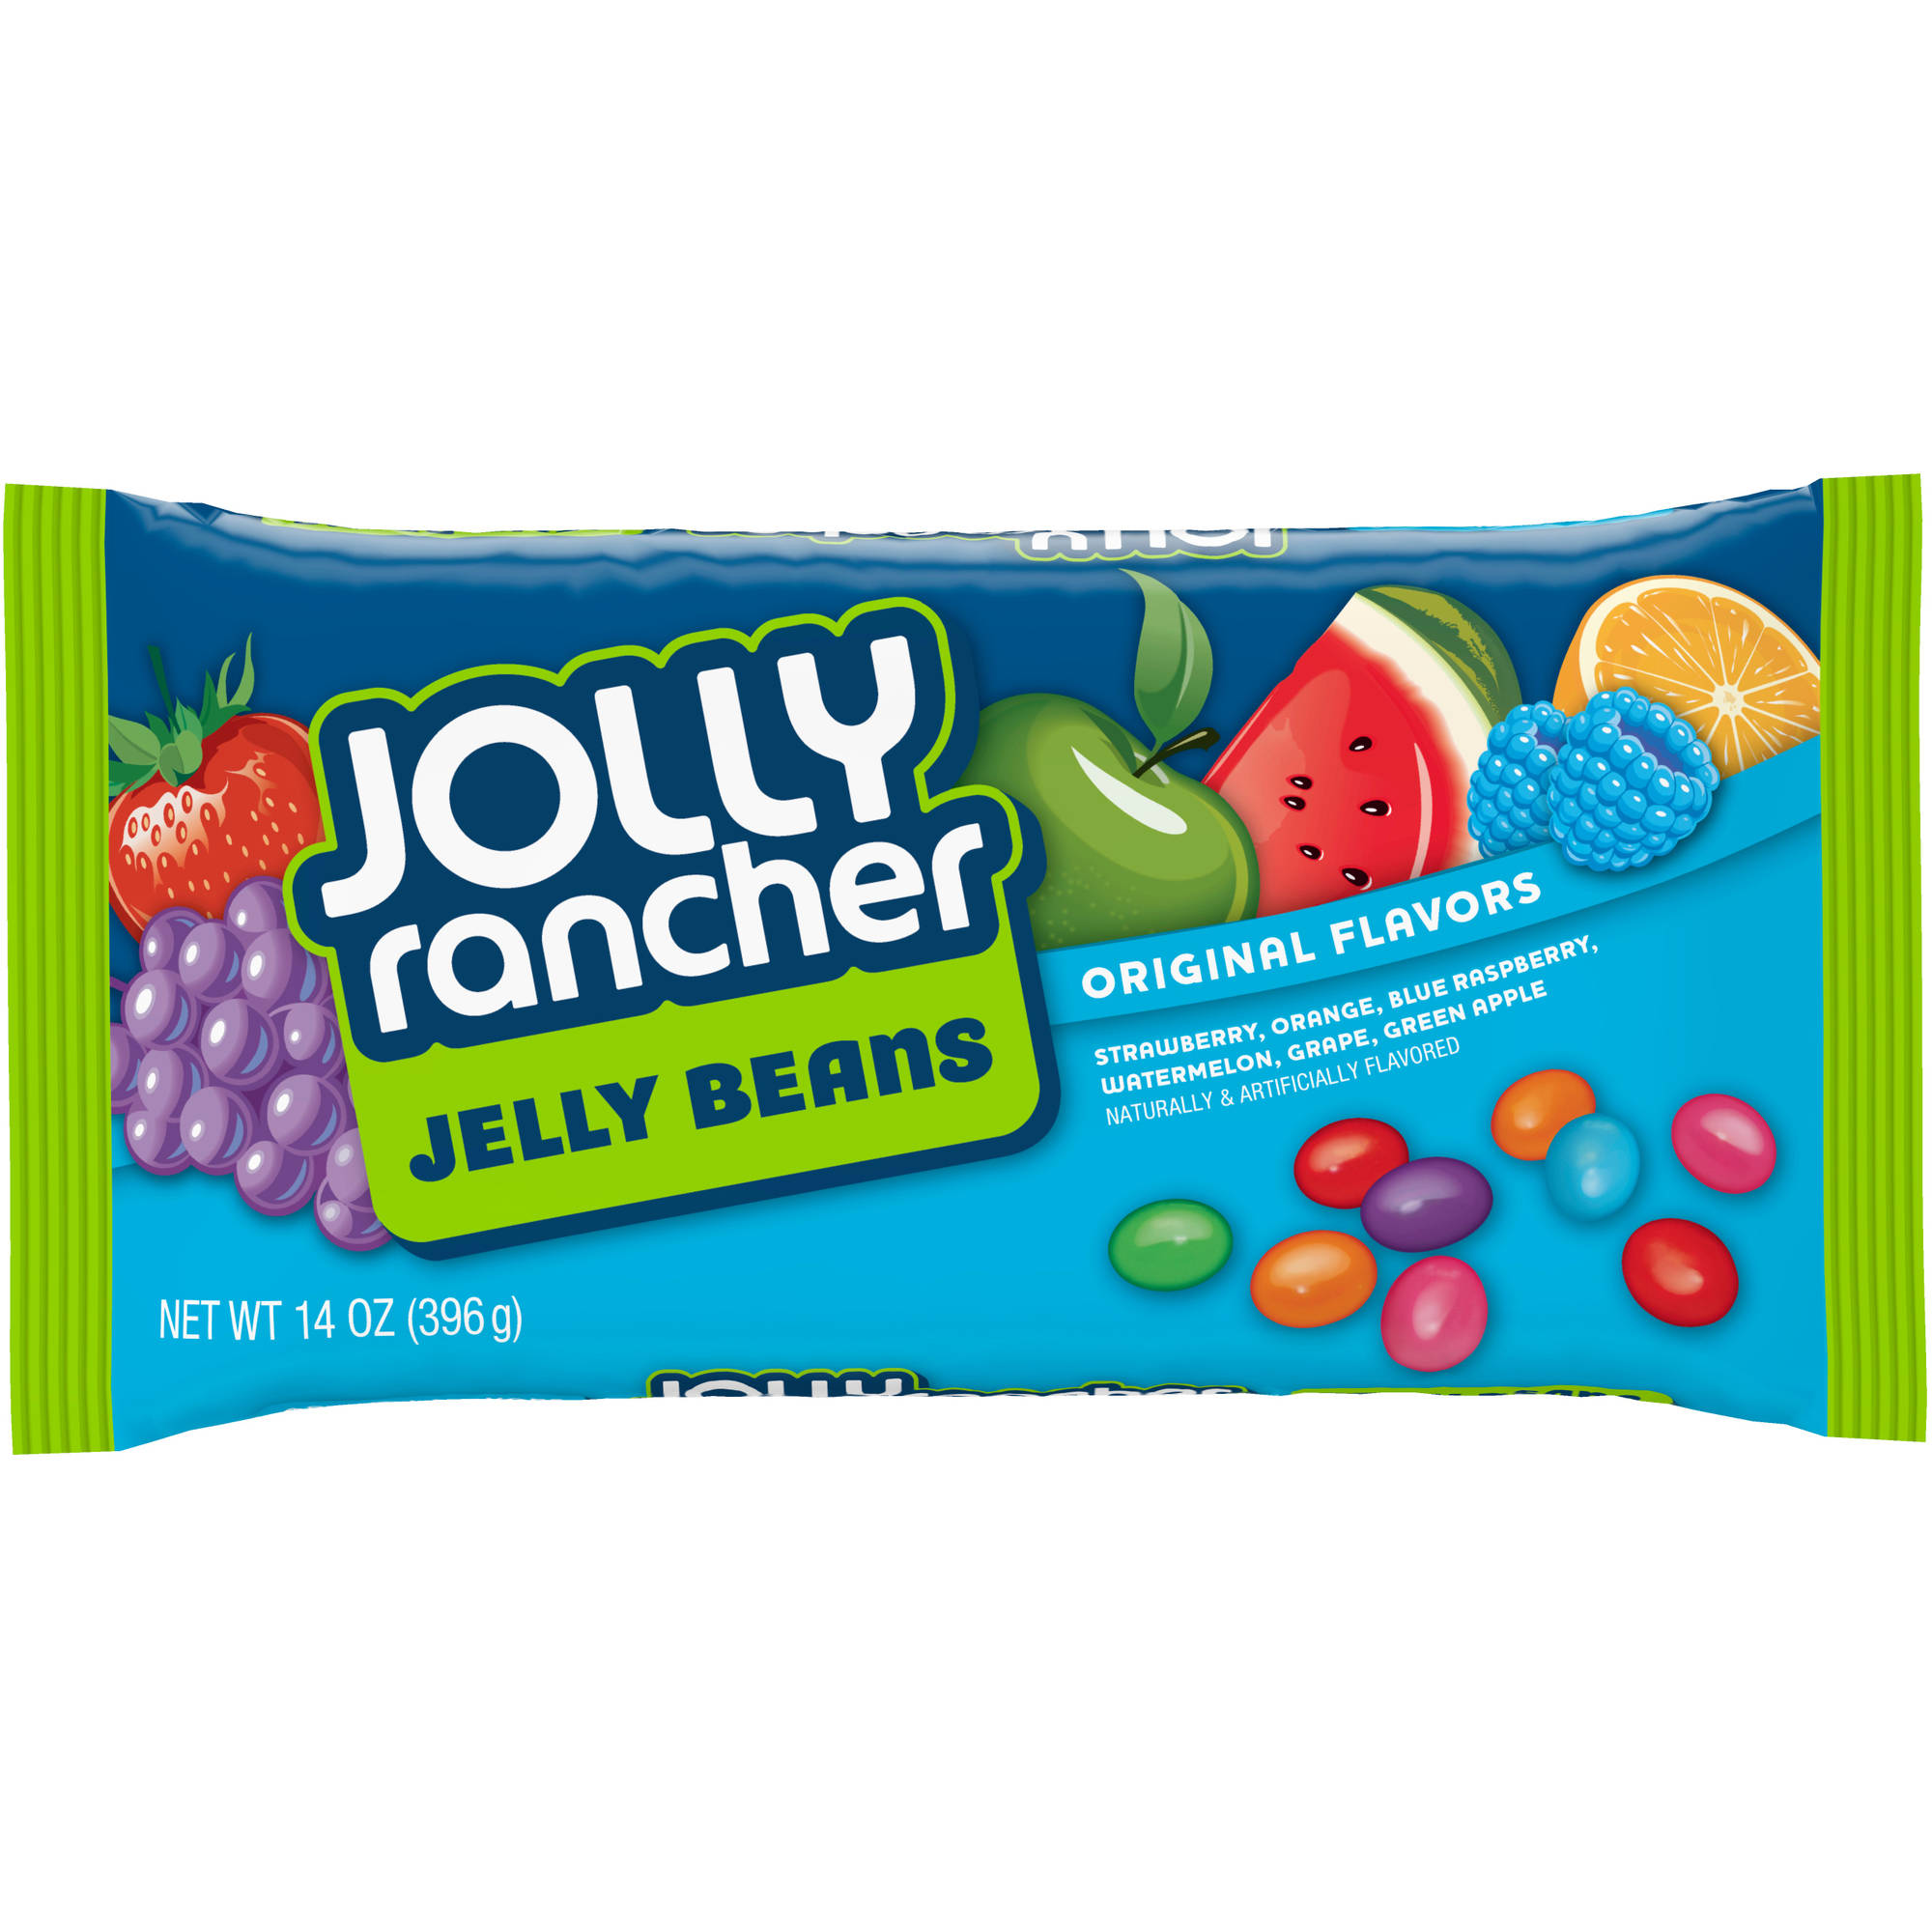 Jolly Rancher Original Flavors Jelly Beans Candy, 14 oz